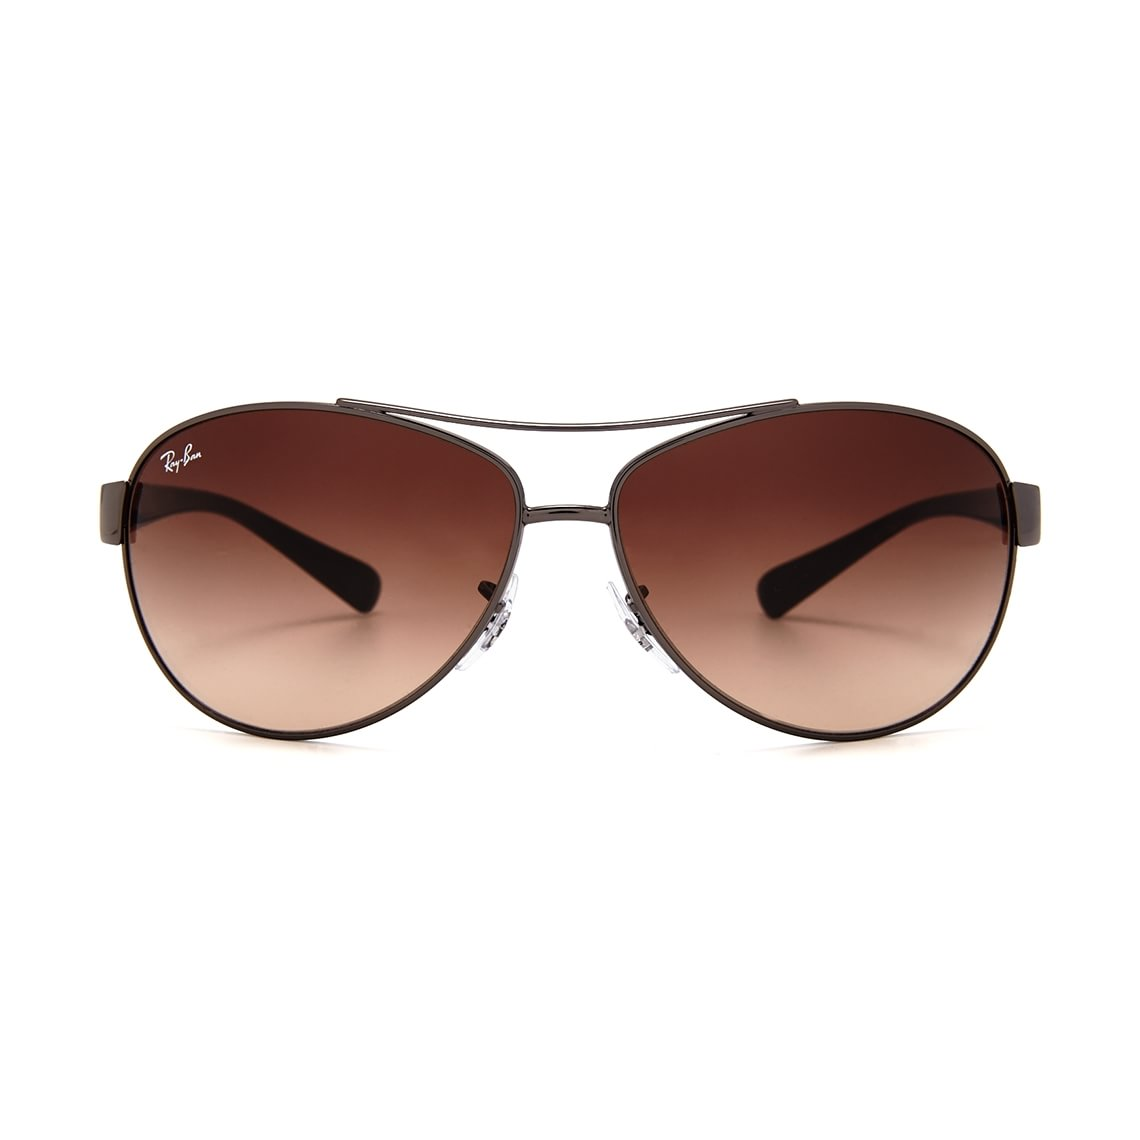 Ray-Ban RB3386 004 13 63 - Synsam 9bbe5d1ea1c92